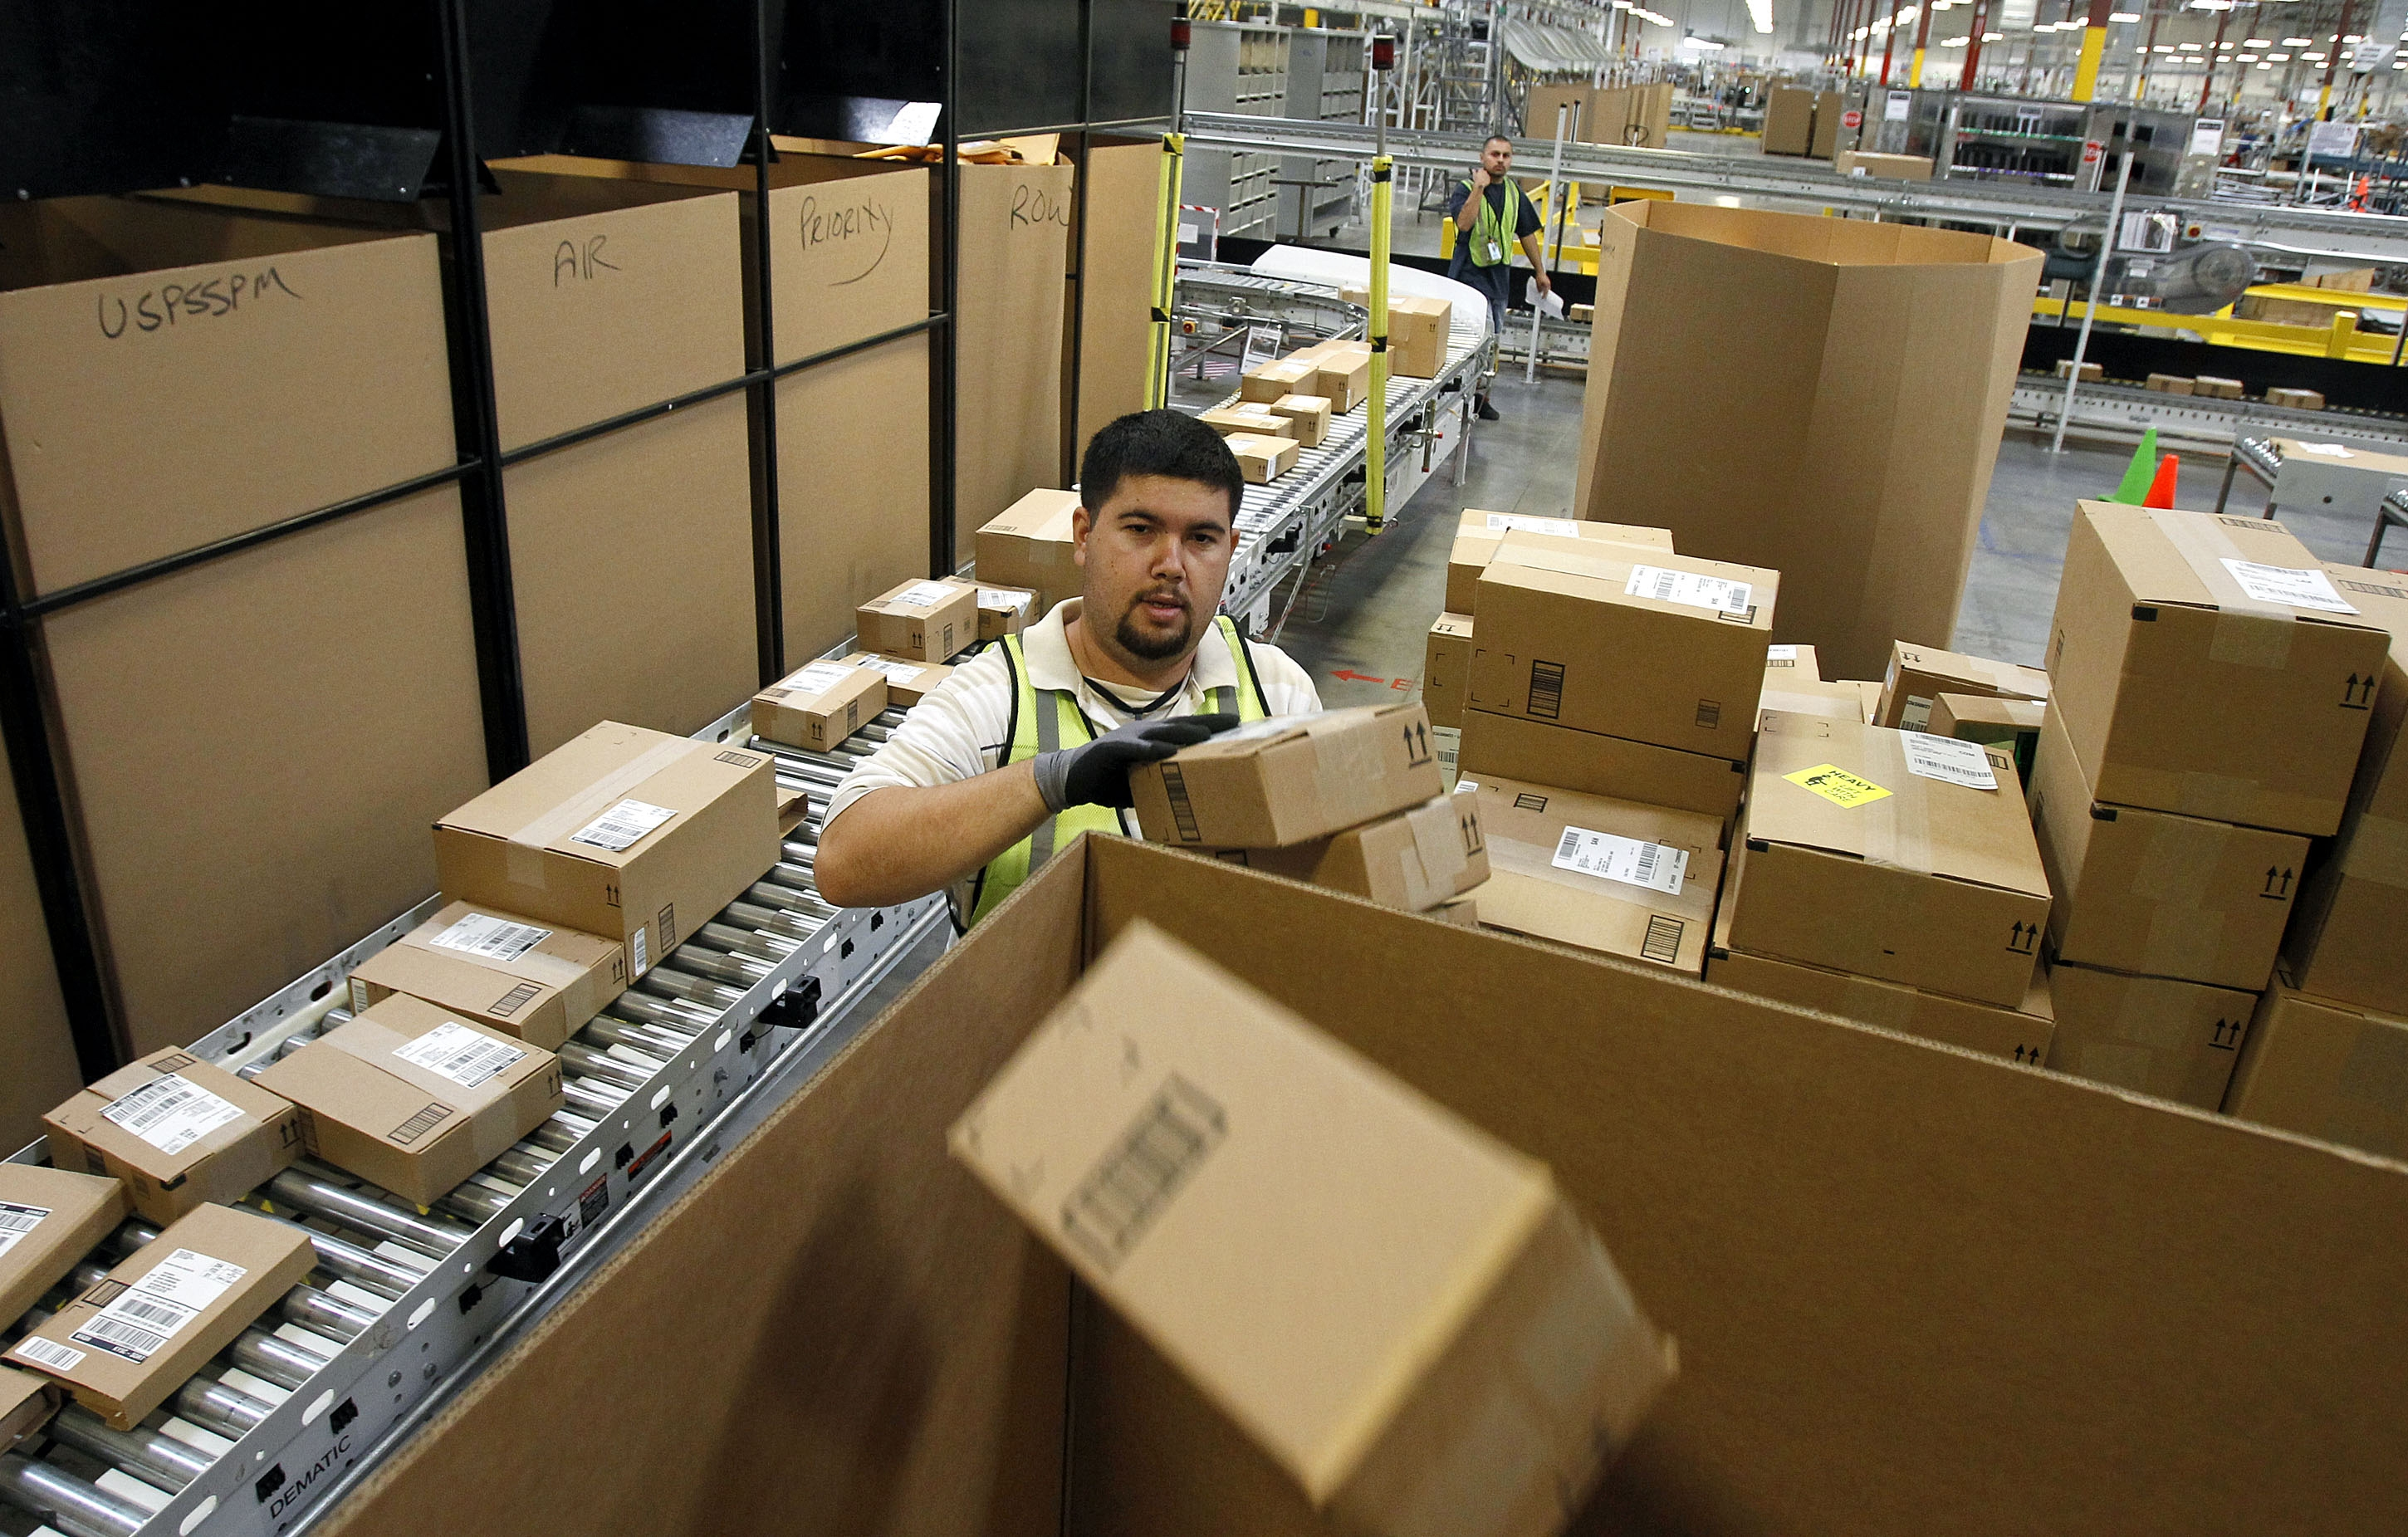 Amazon's fulfillment center in Phoenix is a hub in the online retailer's network that's gearing up for faster-than-ever delivery for the holidays.